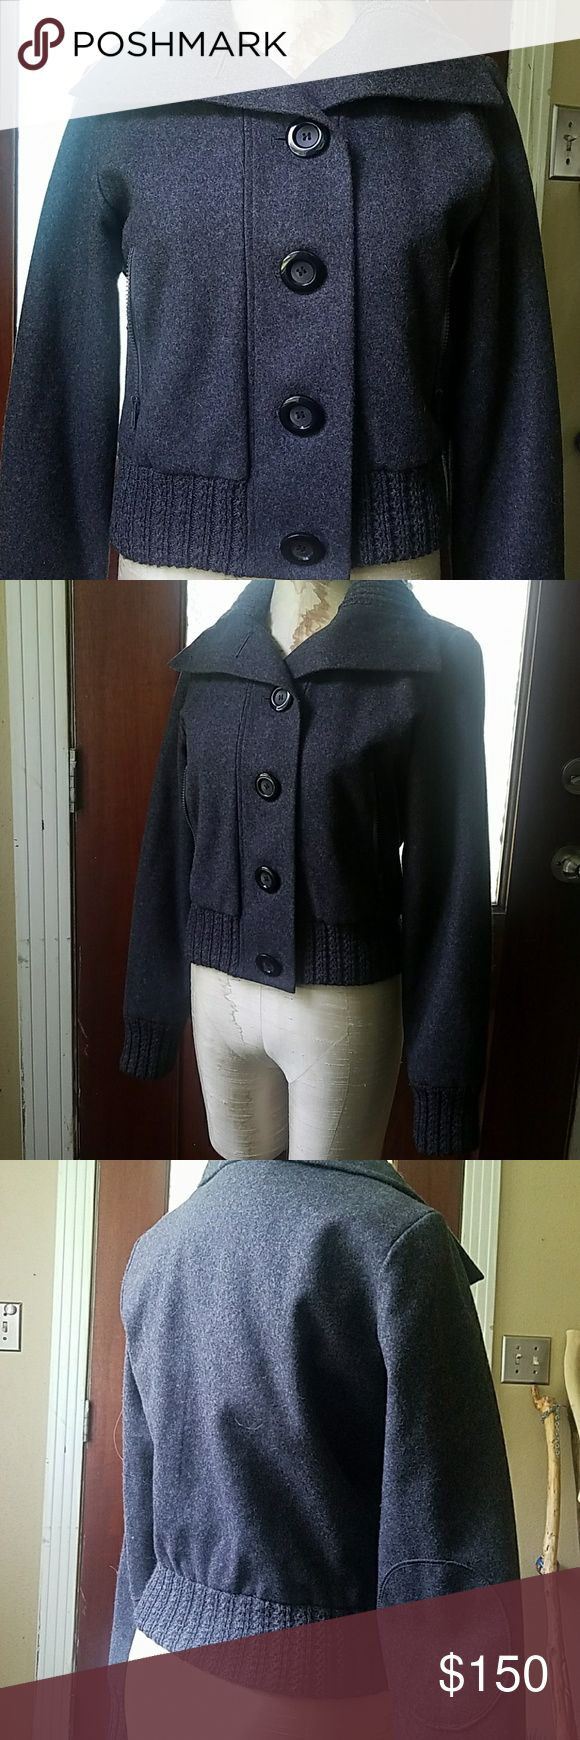 Beautiful wool coat For sale is this beautiful gray wool winter coat by White Rivet (Macy's) originally paid $350 and only wore once. Is a size medium. No rips or stains, a true beautiful piece! Dry clean only. Smoke free home. Jackets & Coats Pea Coats